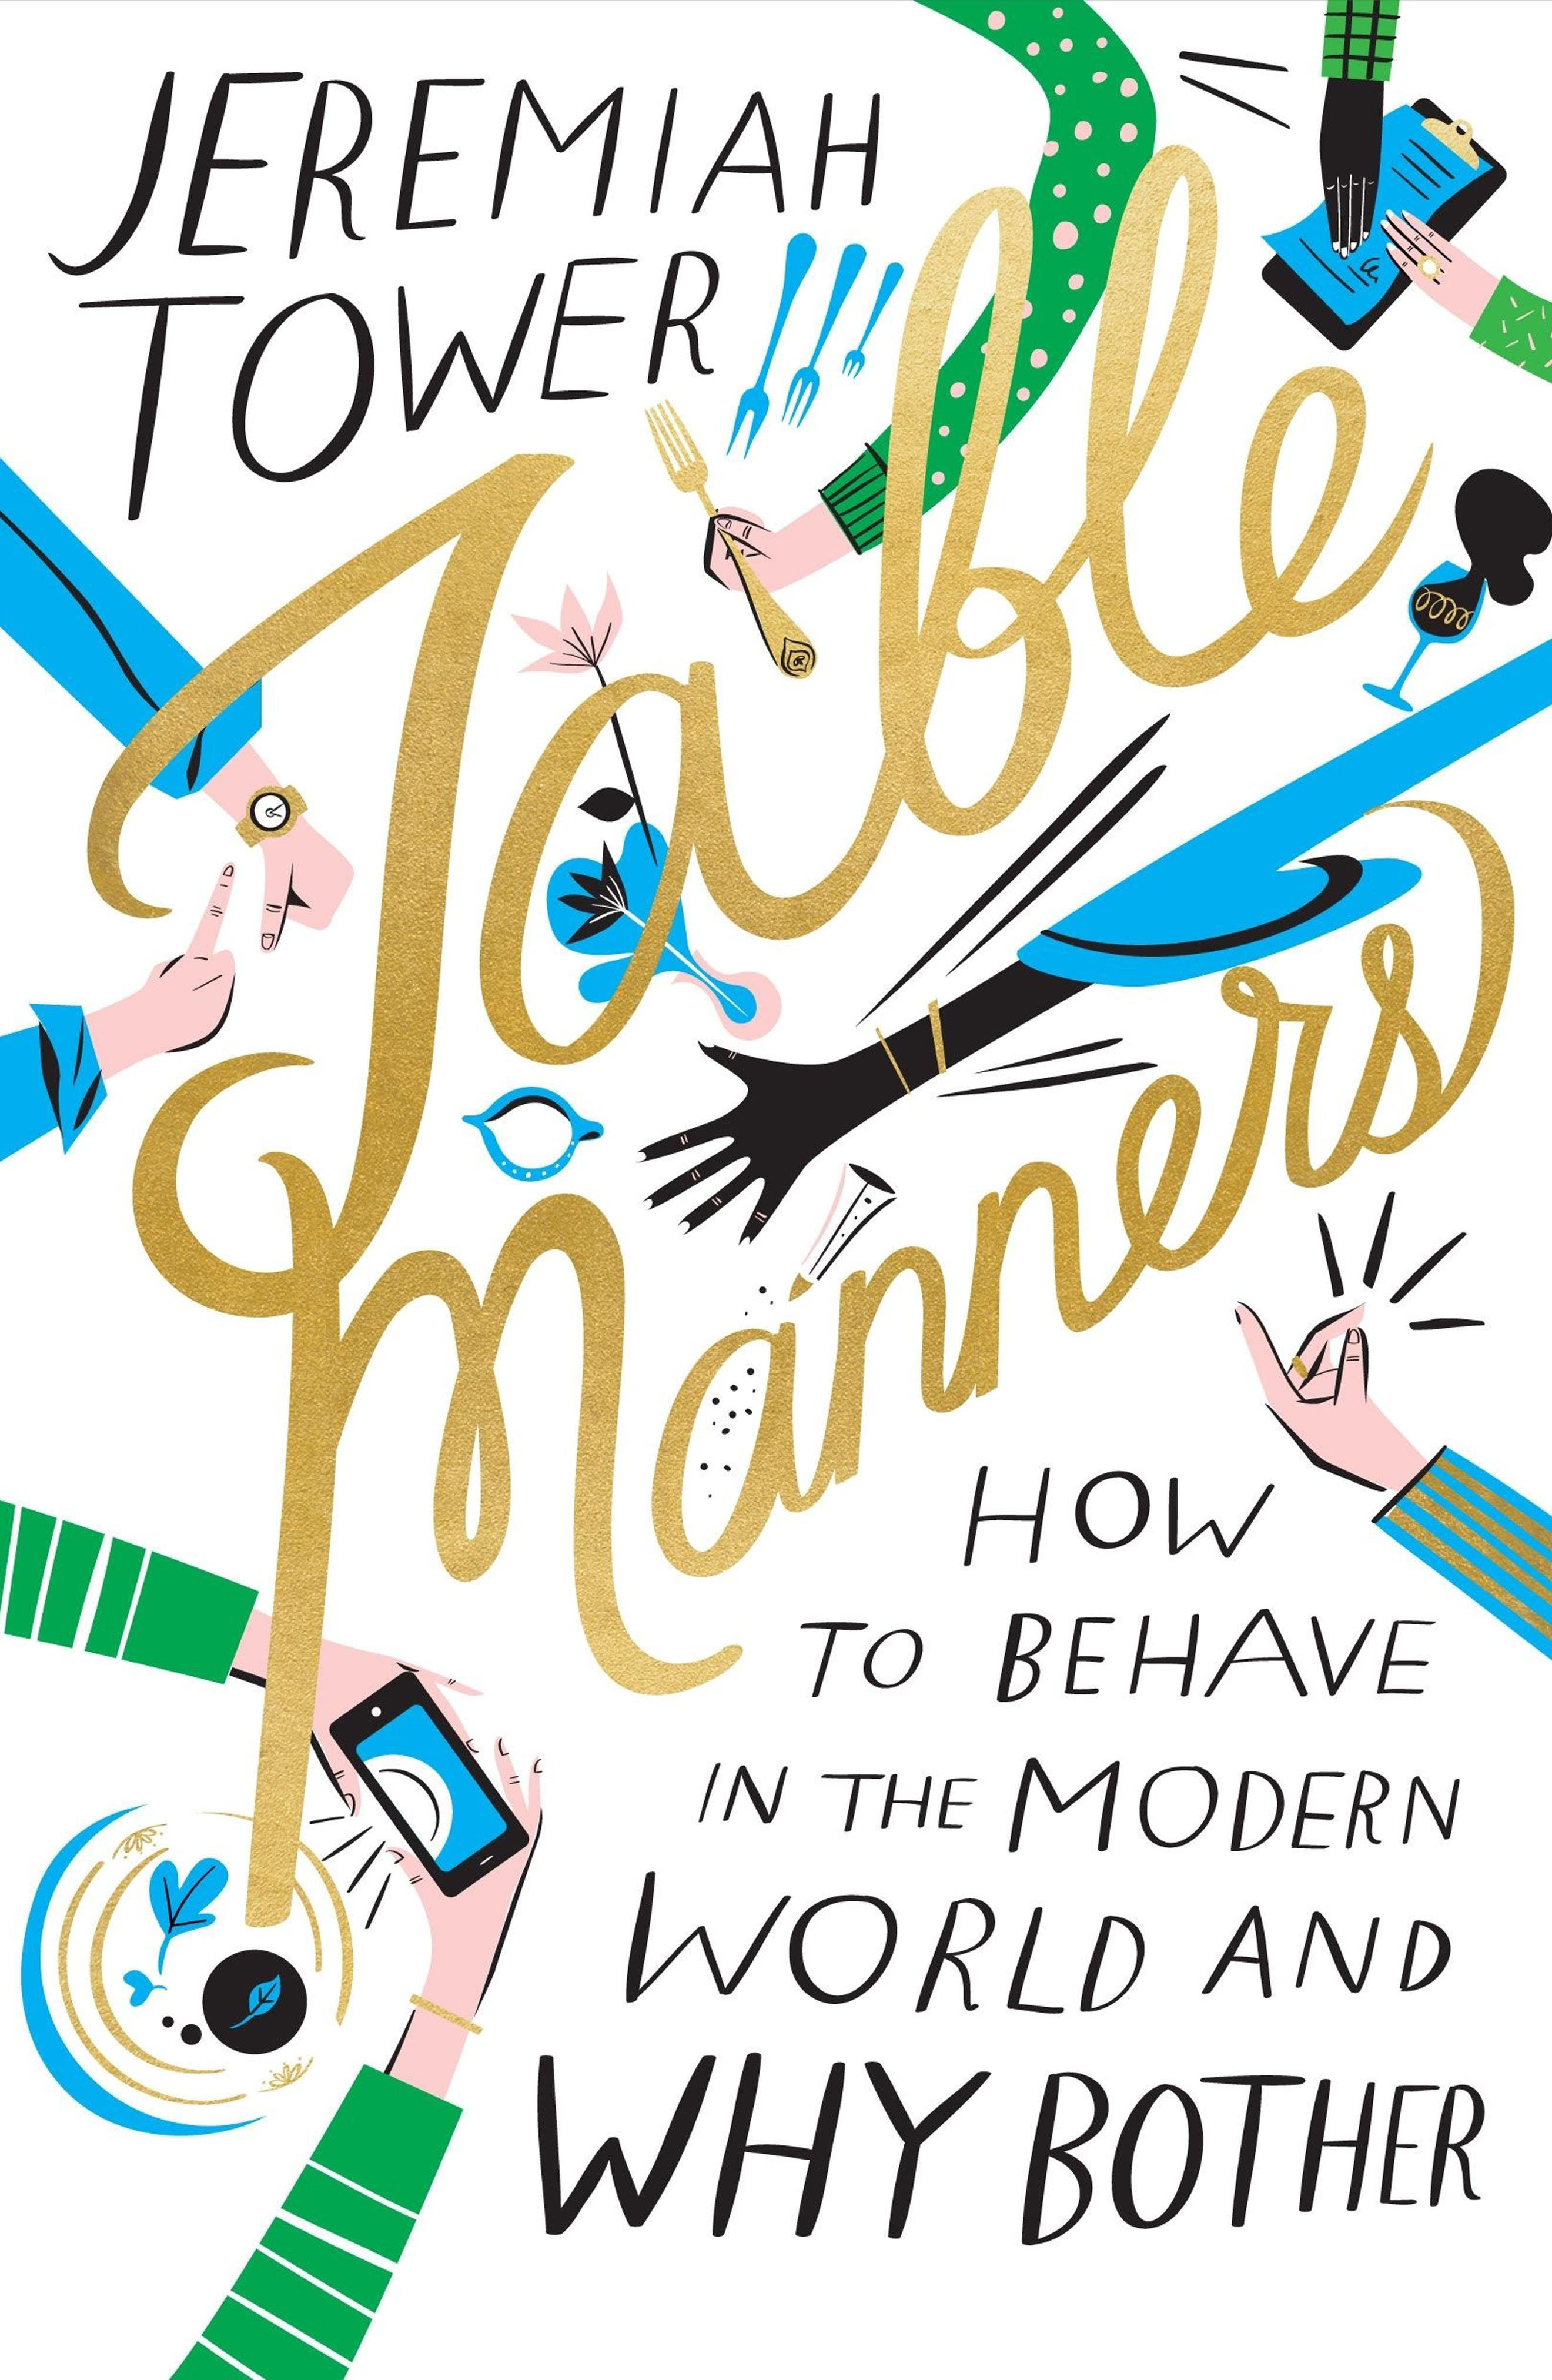 Main Image - Table Manners: How to Behave in the Modern World and Why Bother Book